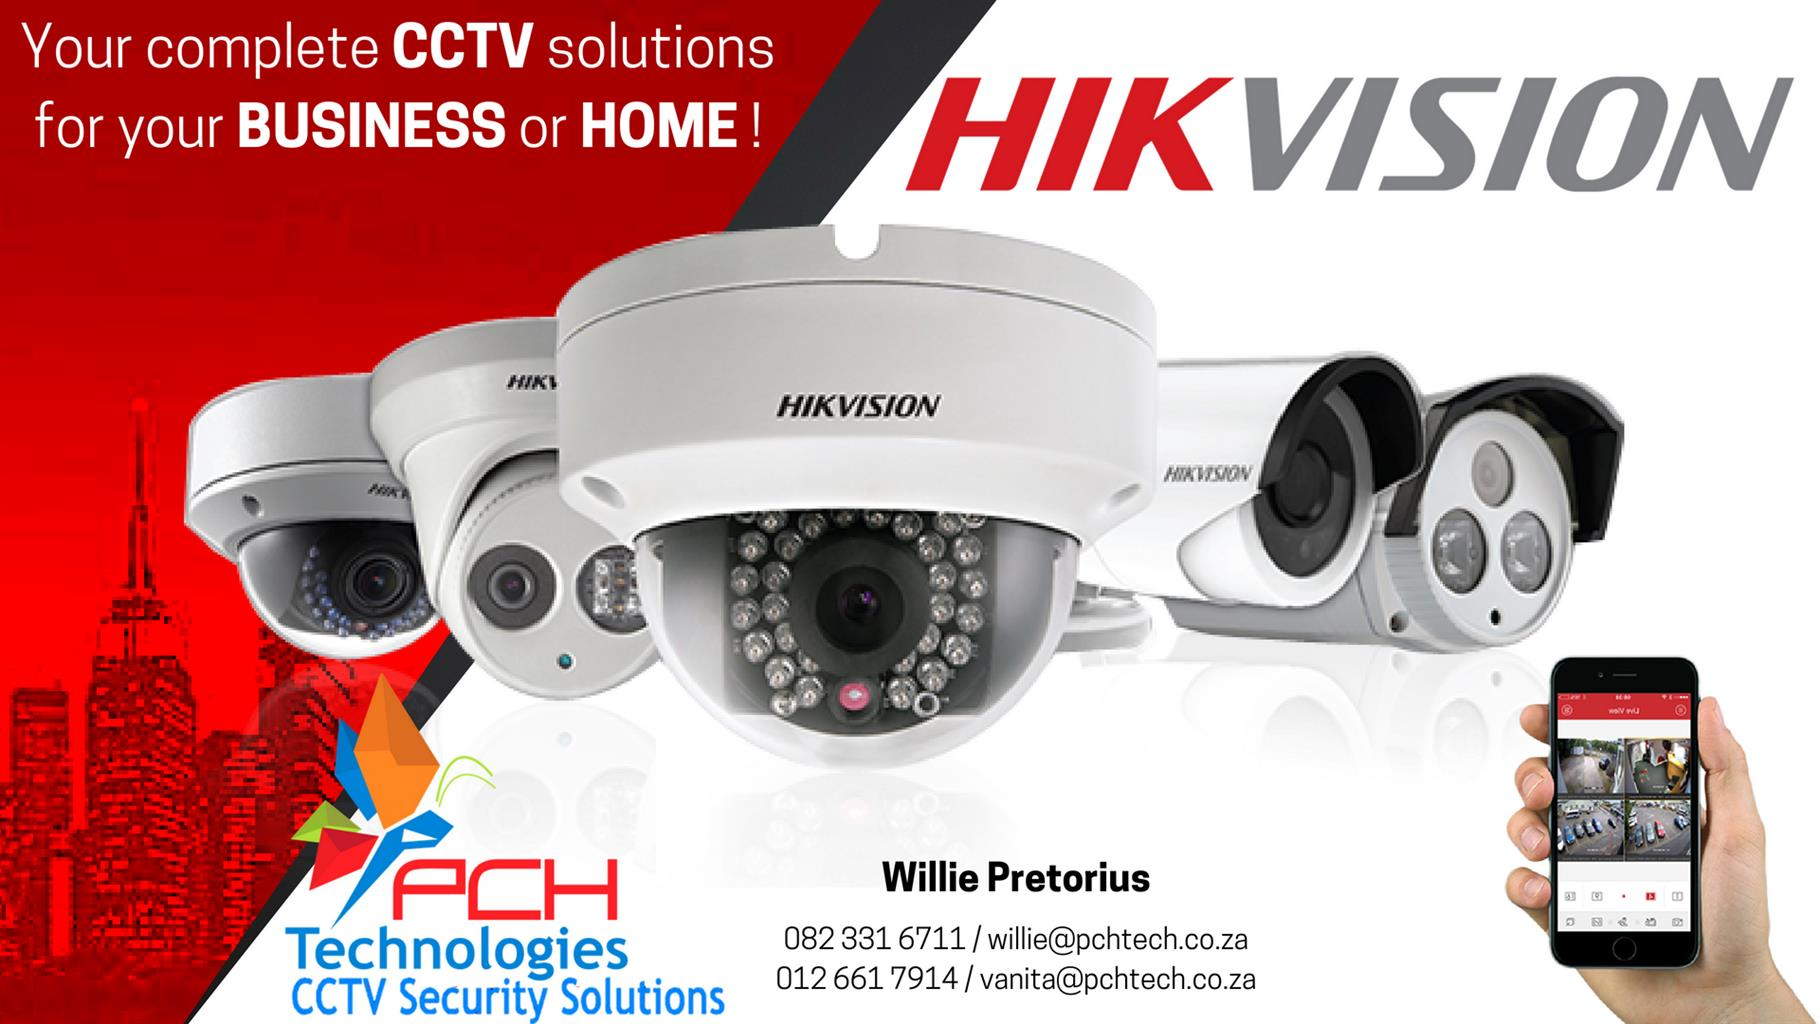 CCTV INSTALLERS OF HIKVISION SYSTEMS IN YOUR HOME OR BUSINESS